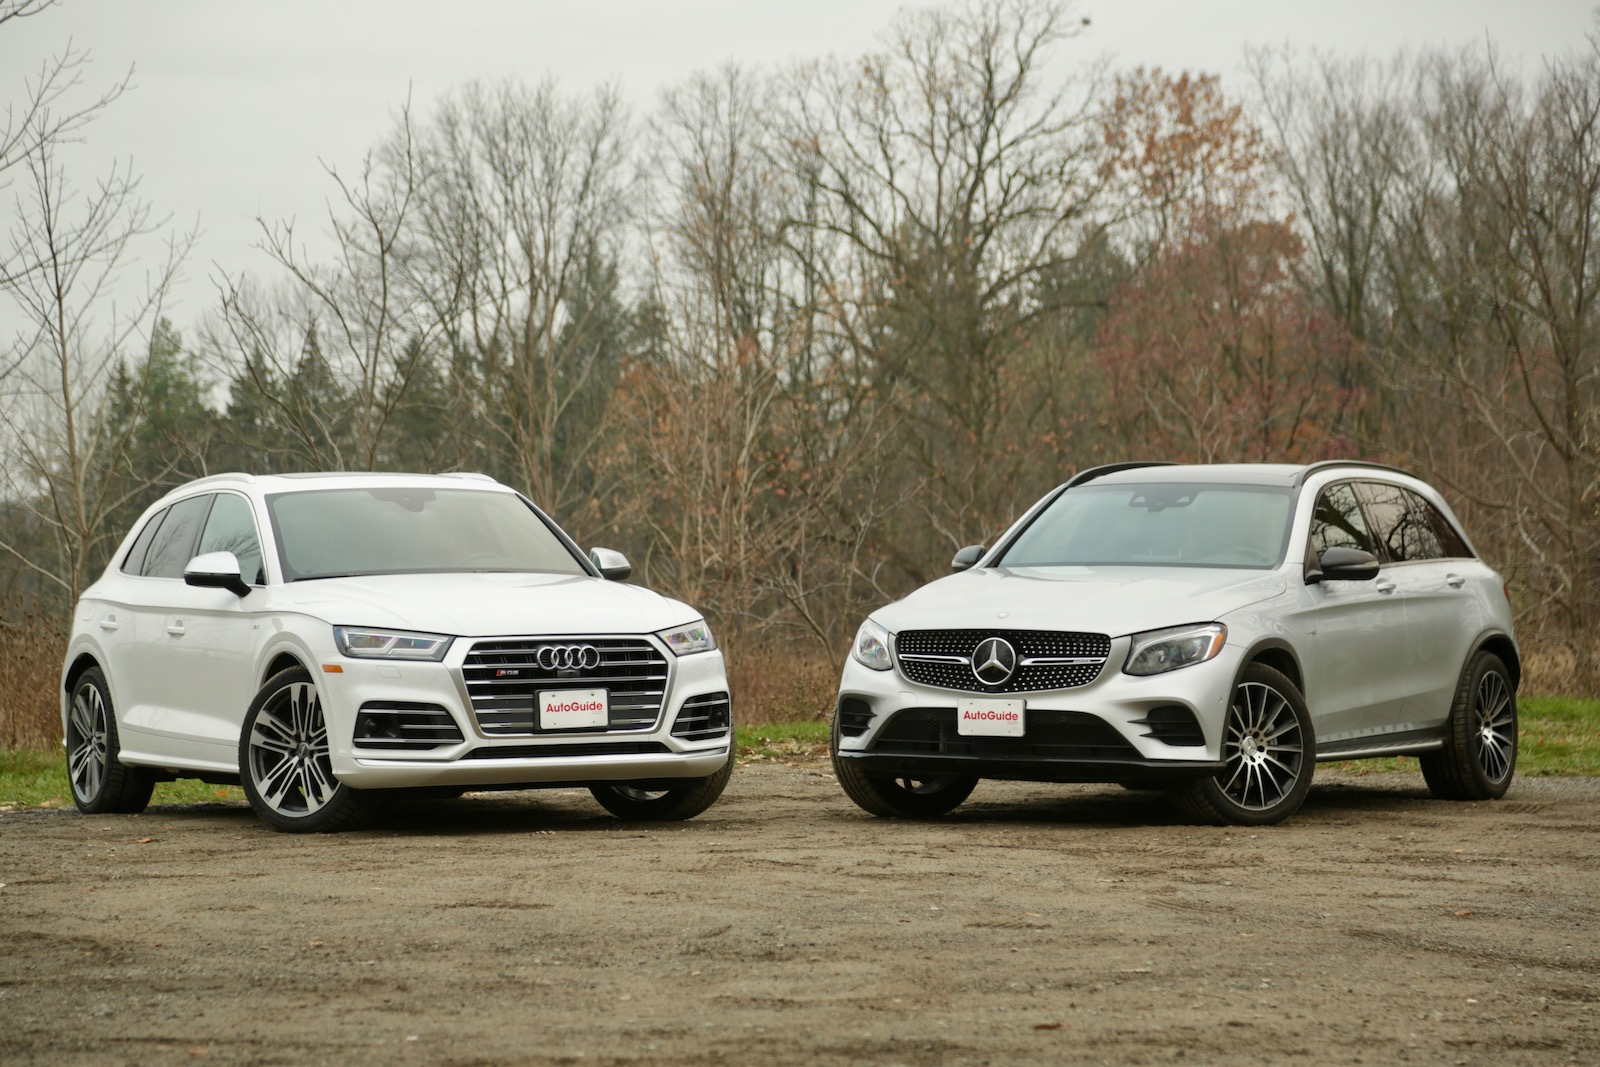 2018 Audi Sq5 Vs Mercedes Amg Glc43 00001